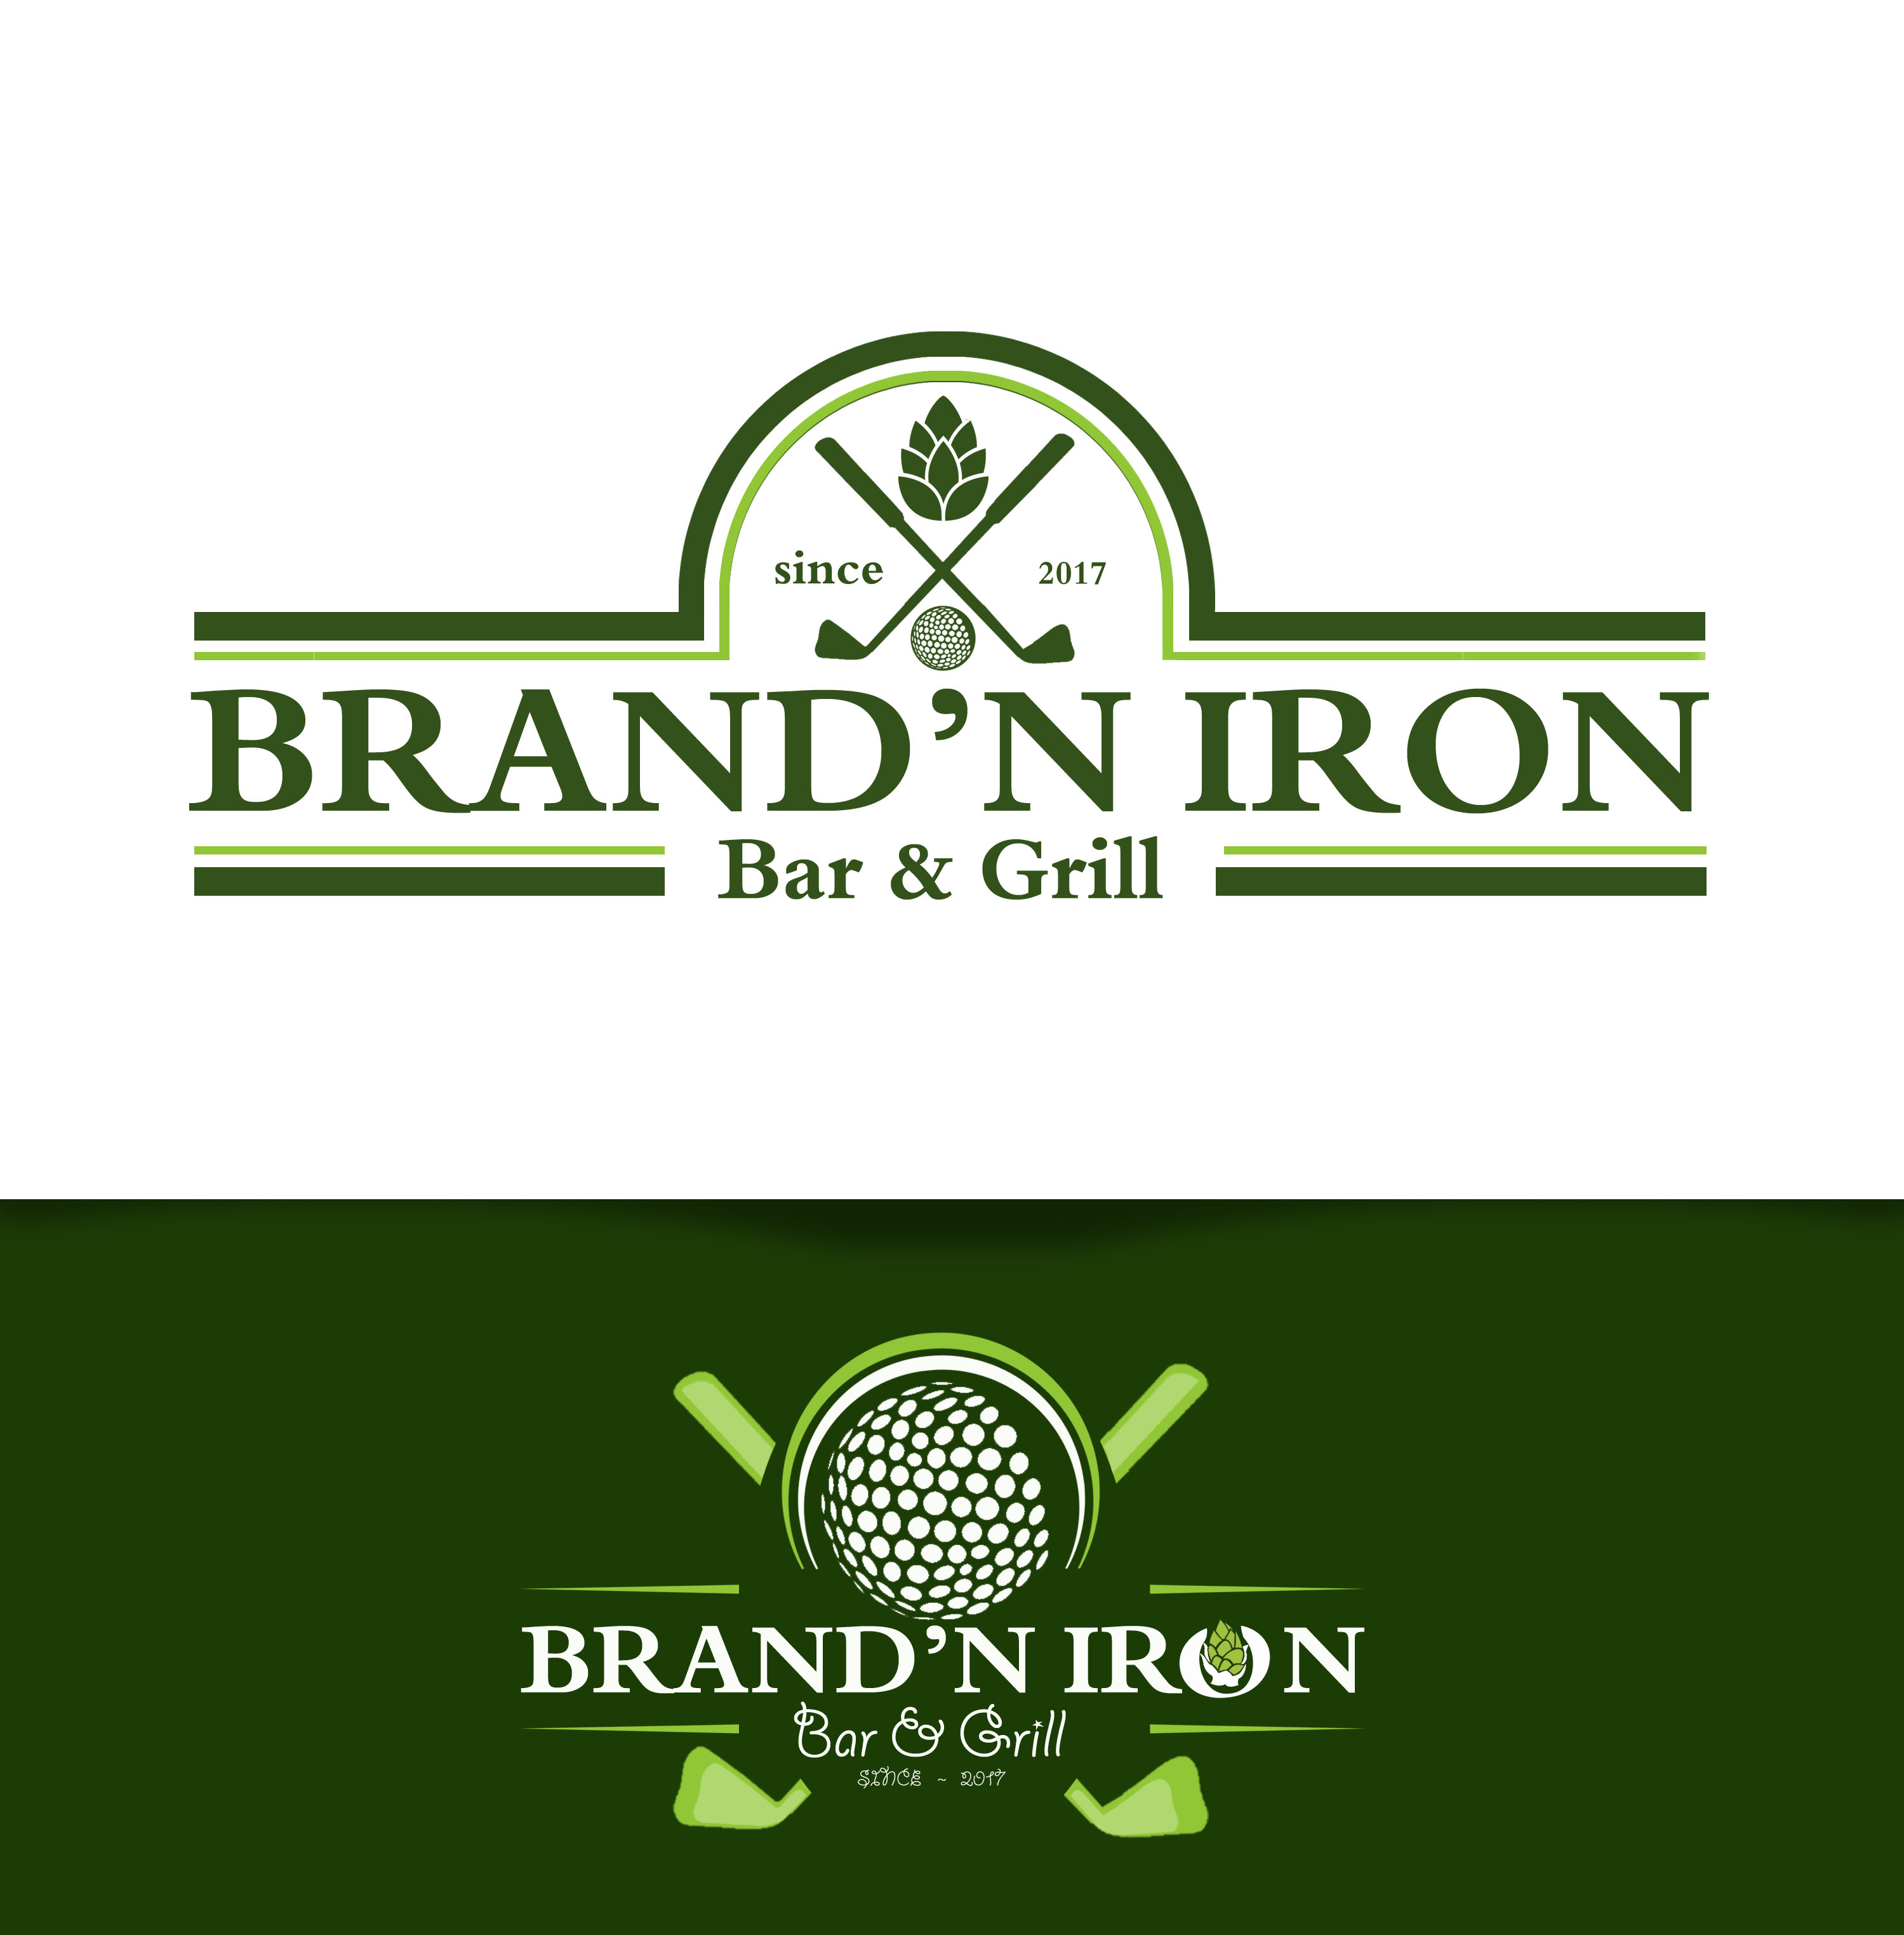 Logo Design by JSDESIGNGROUP - Entry No. 176 in the Logo Design Contest Captivating Logo Design for Brand'n Iron Bar & Grill.